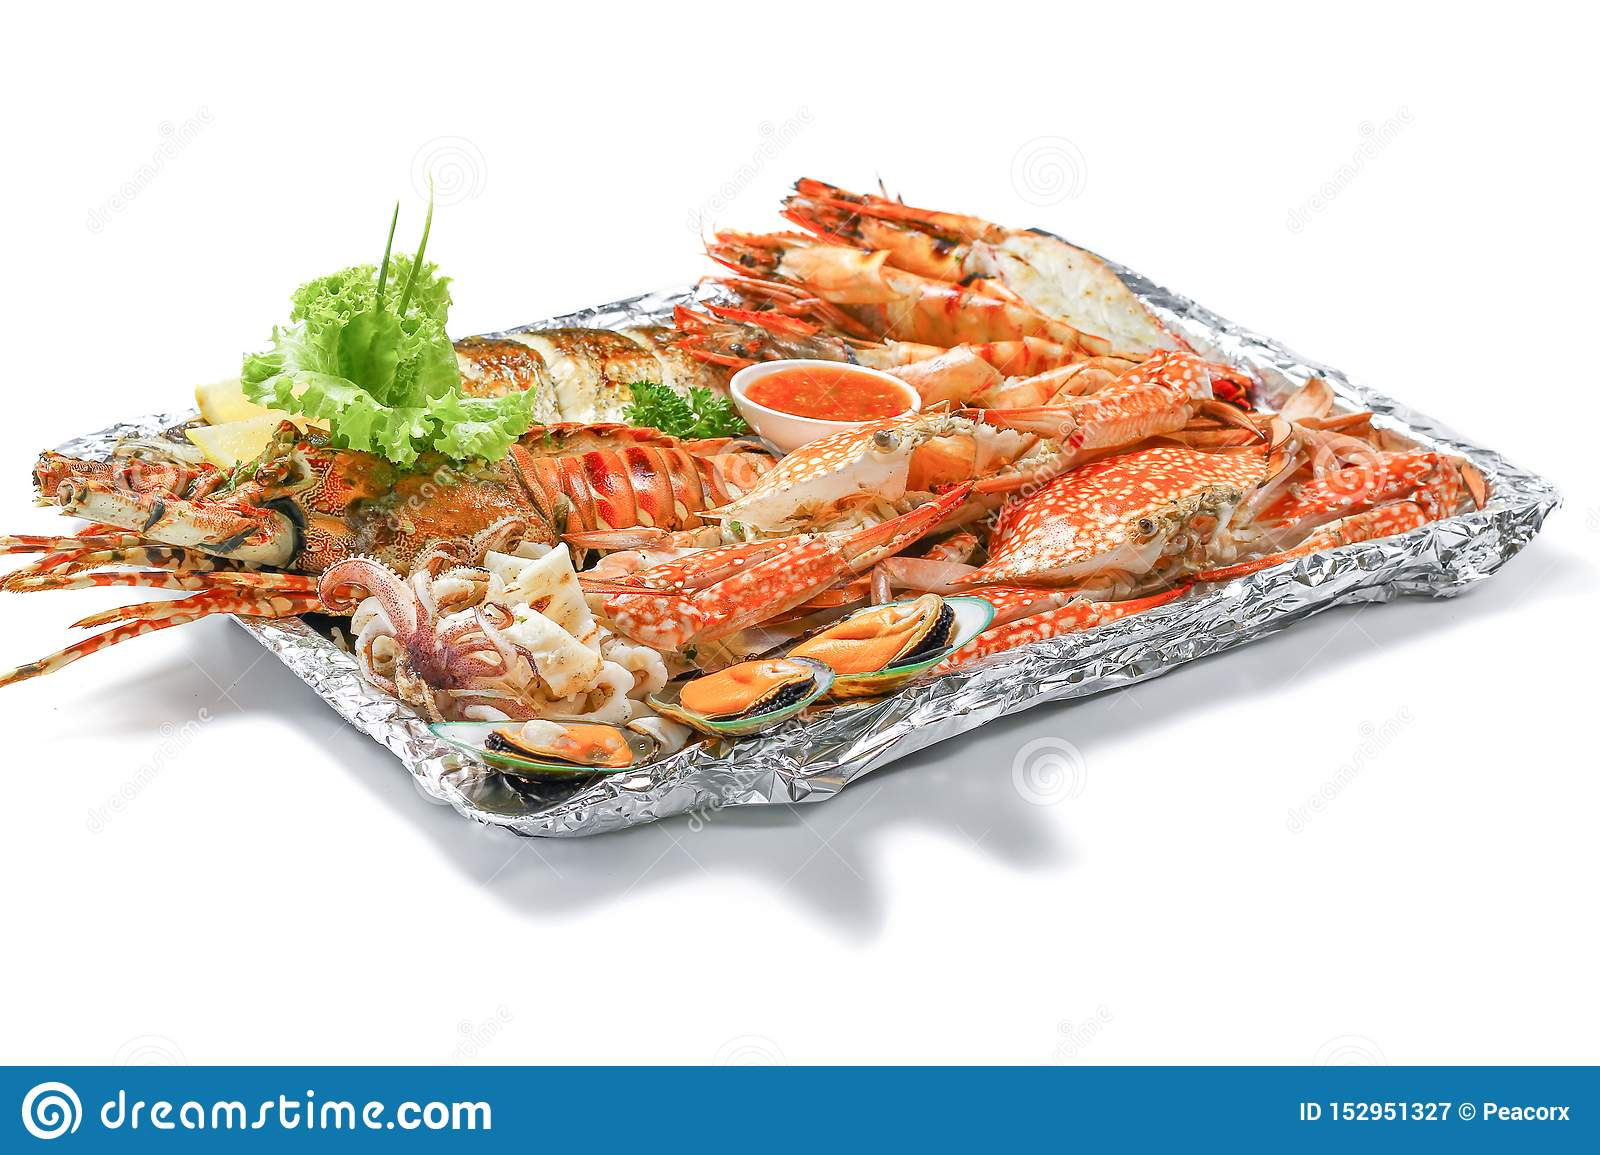 Grilled Mixed Sea-food Platter Set Contain Lobster, Fish